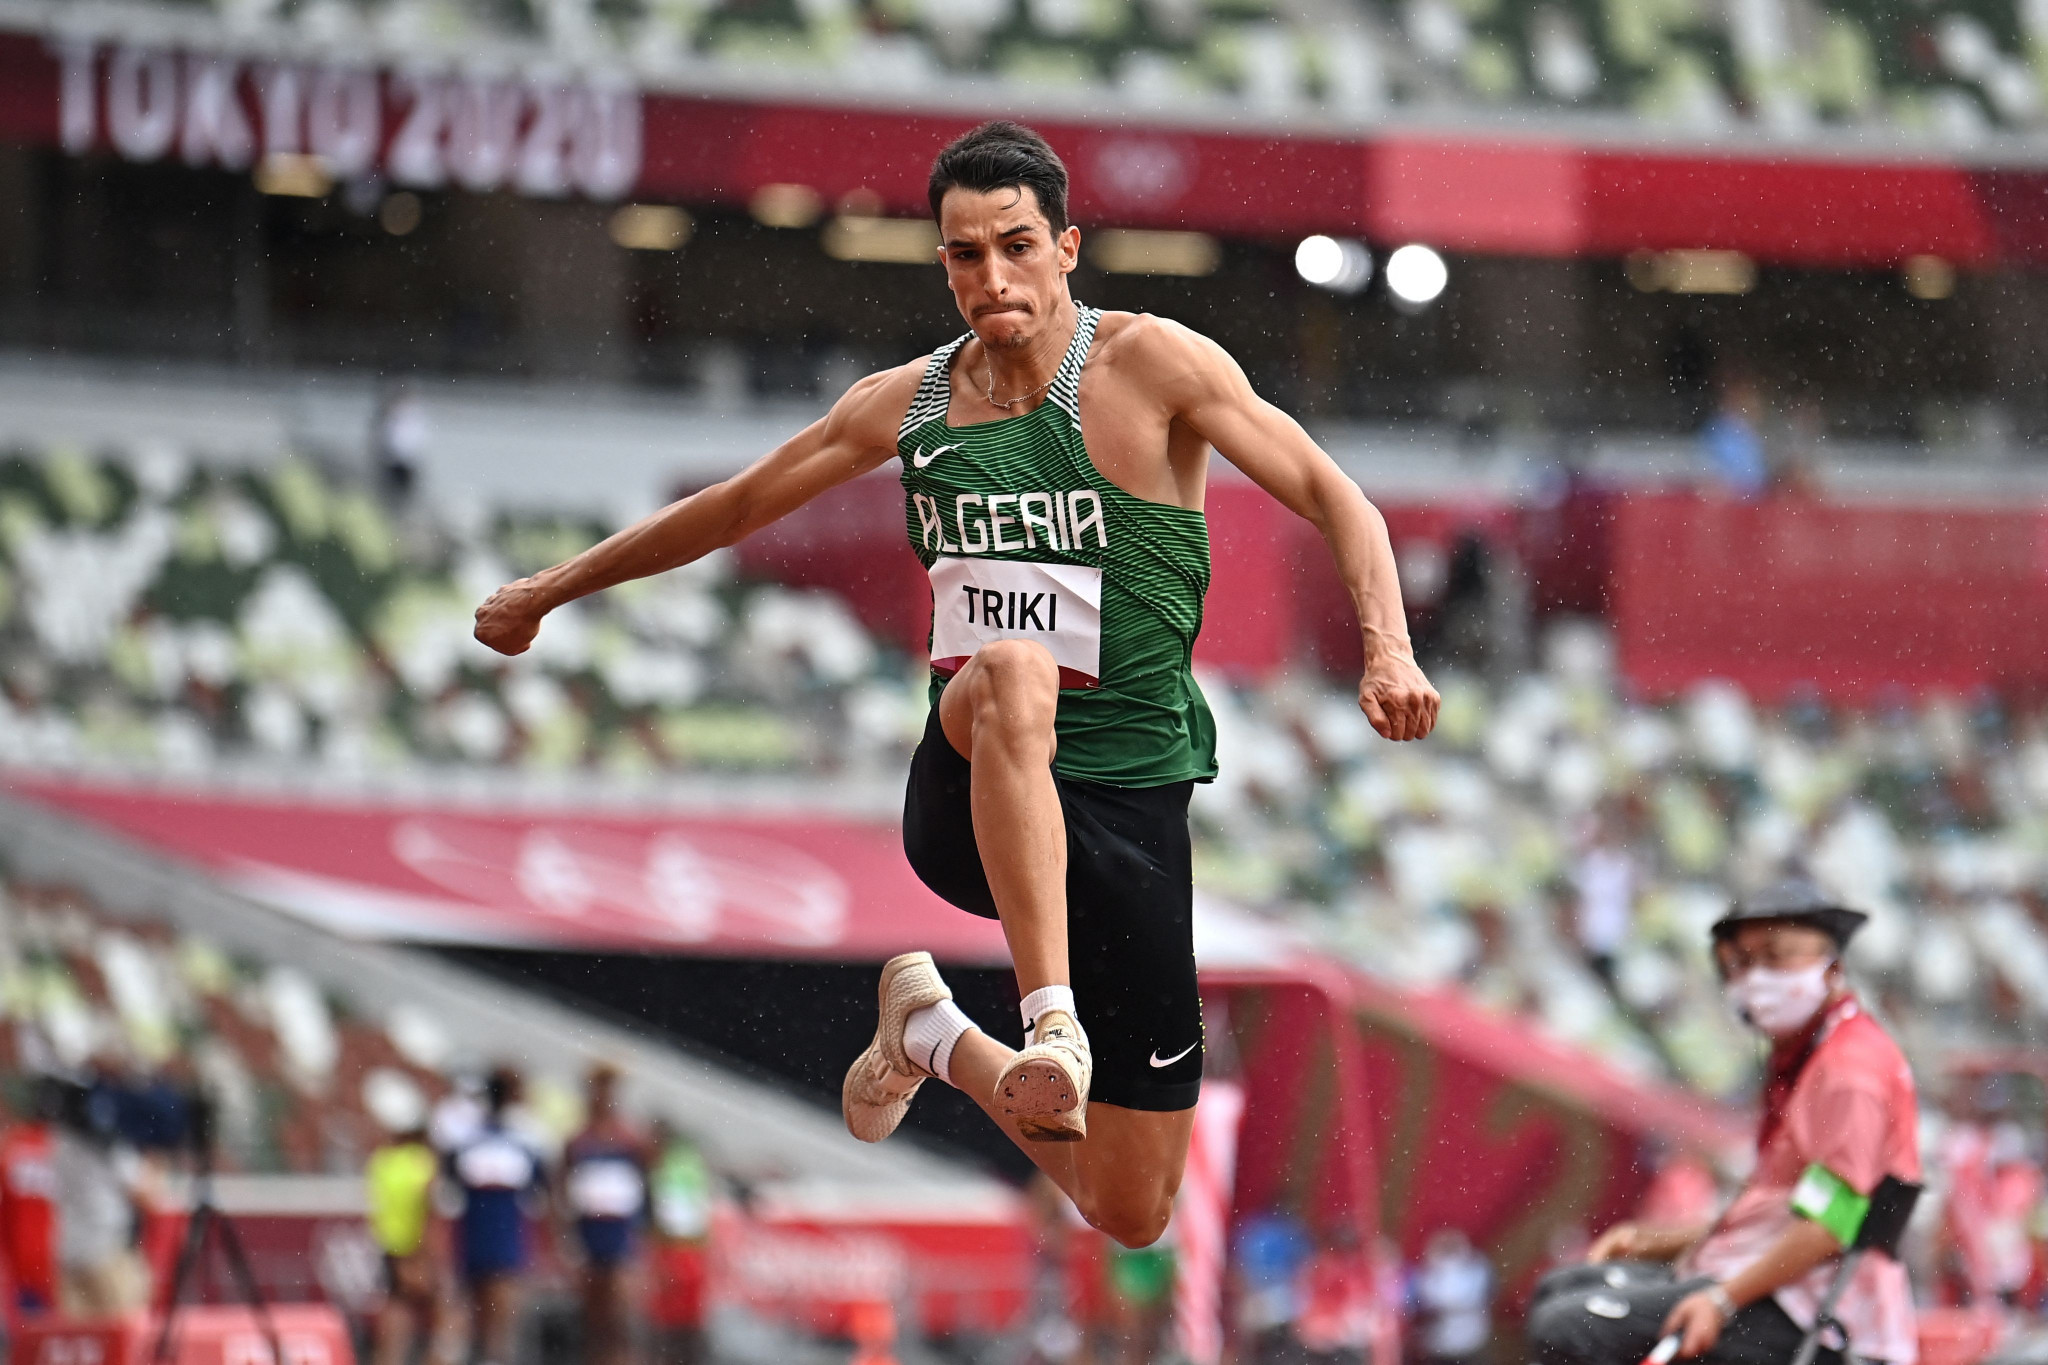 Yasser Triki's fifth place in the men's triple jump was Algeria's best result at the Tokyo 2020 Olympics ©Getty Images